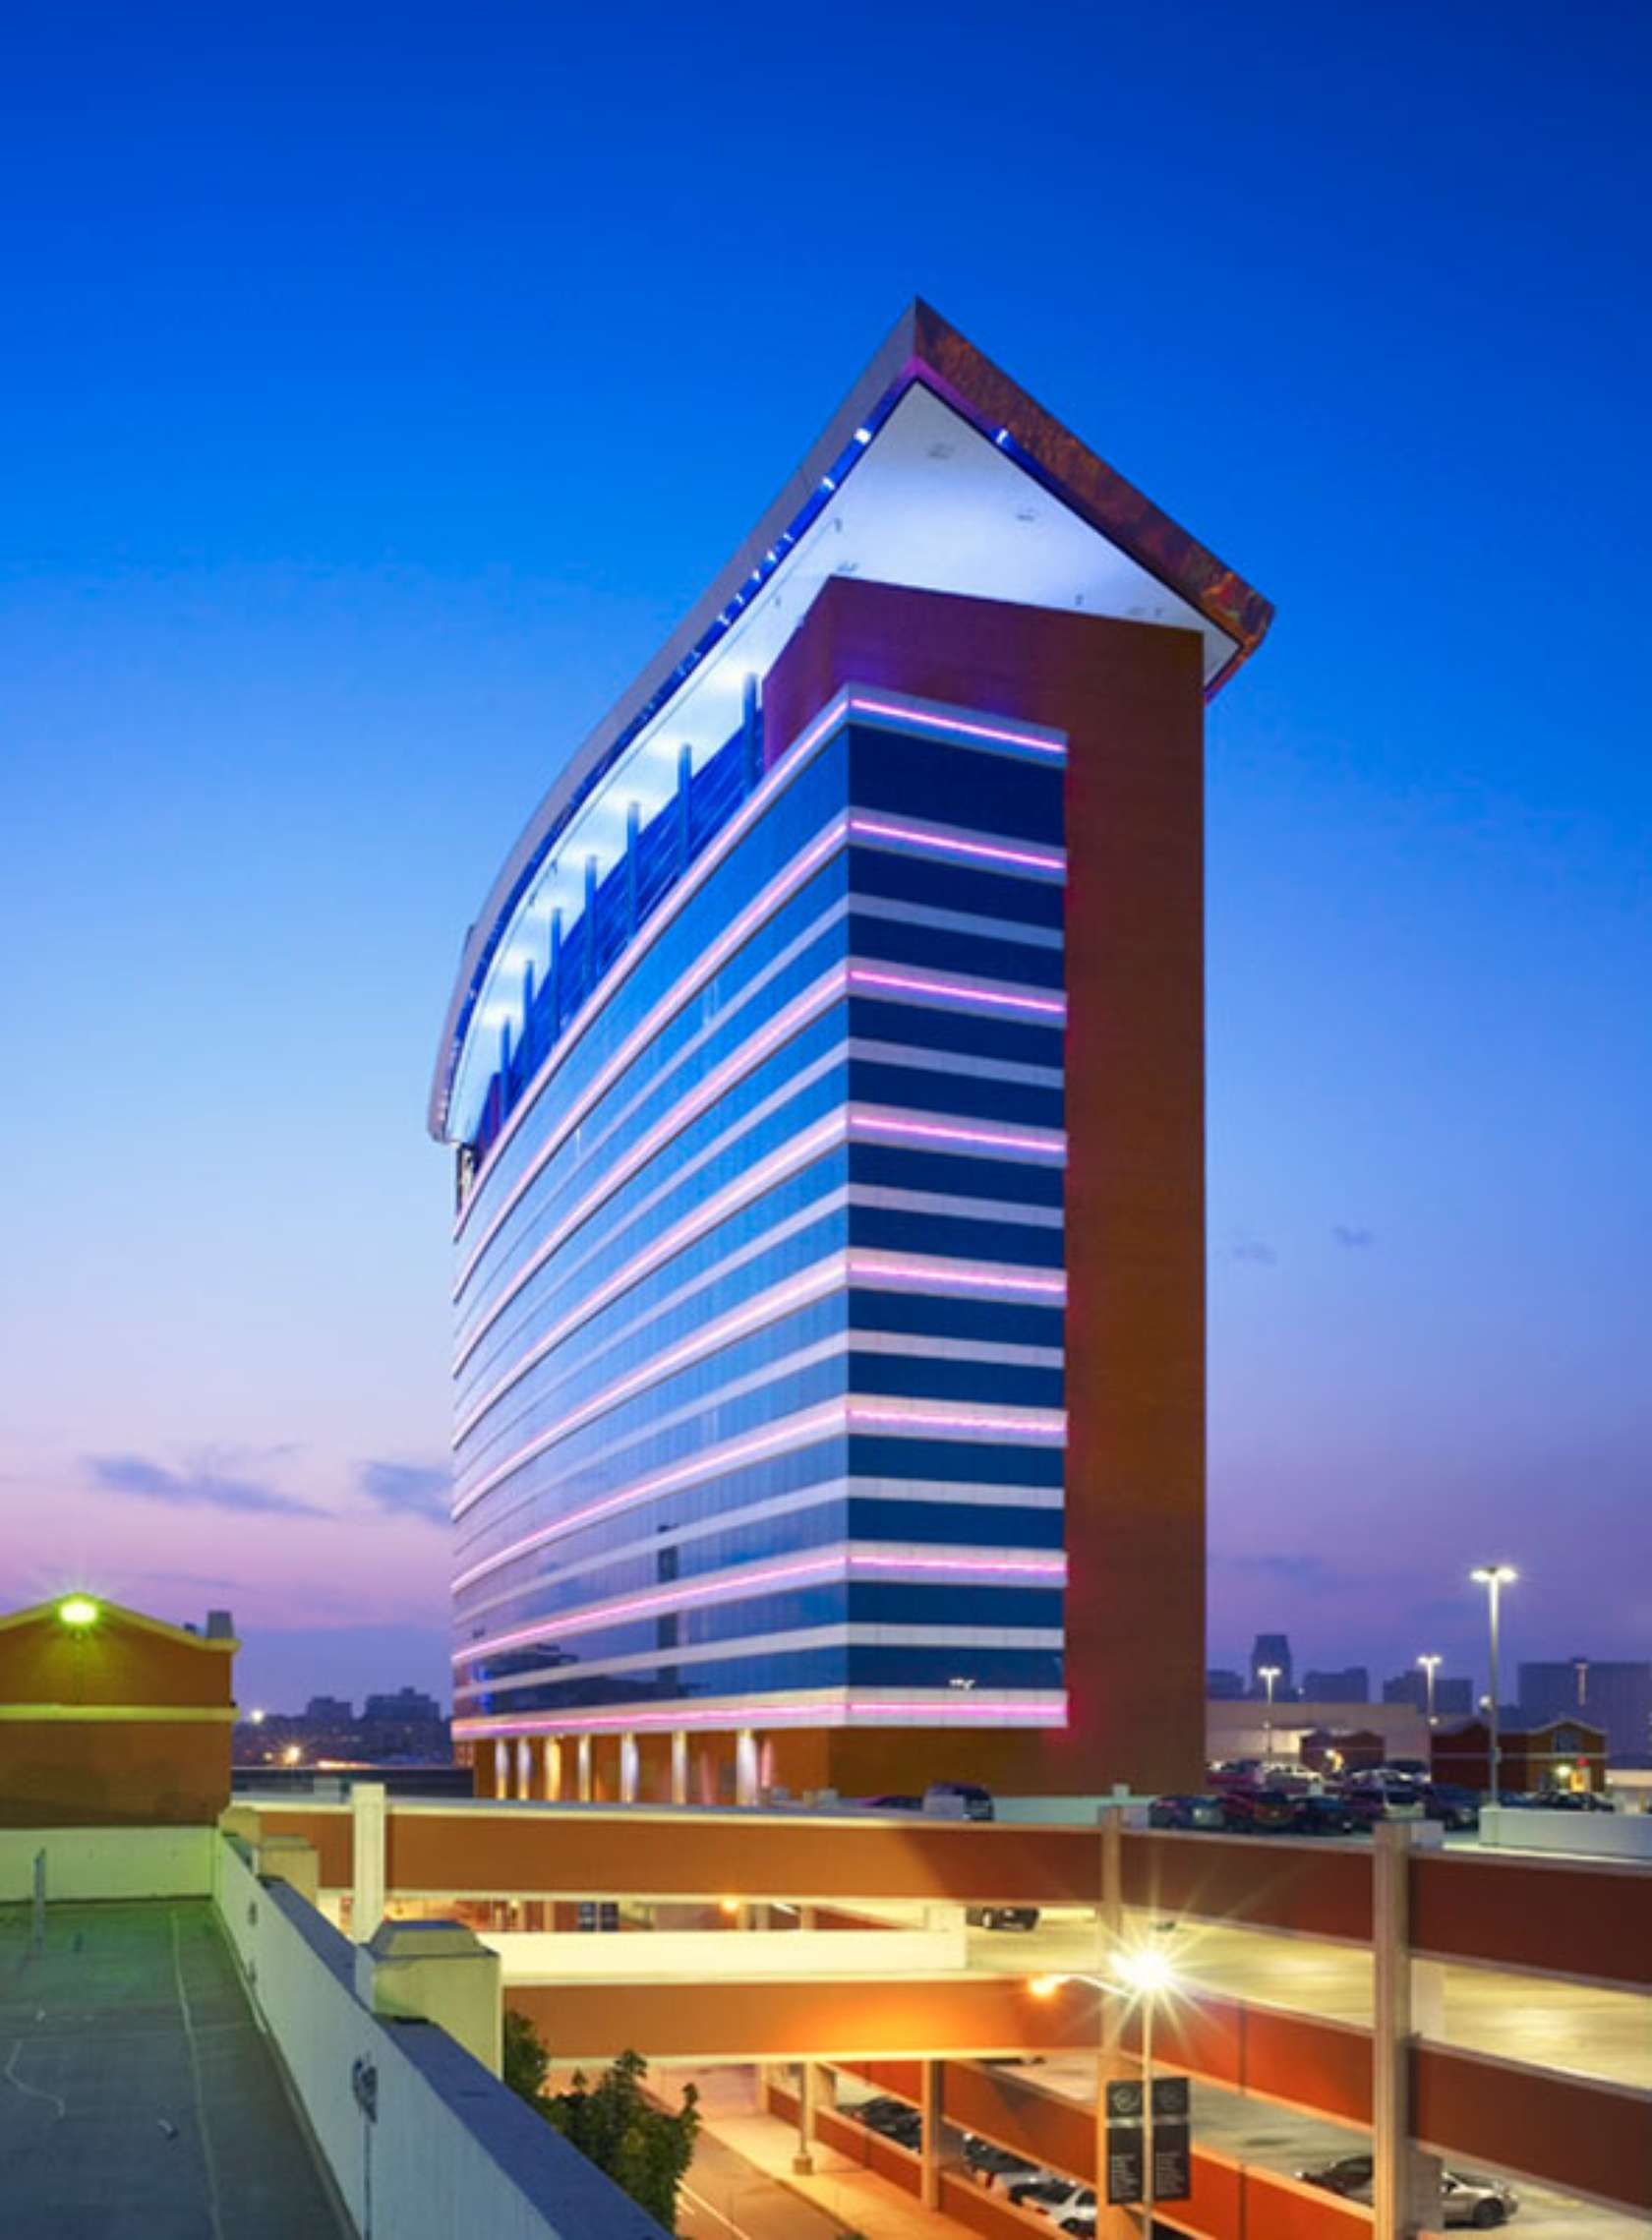 Motorcity casino and hotel architizer for Motor city casino hotel rooms